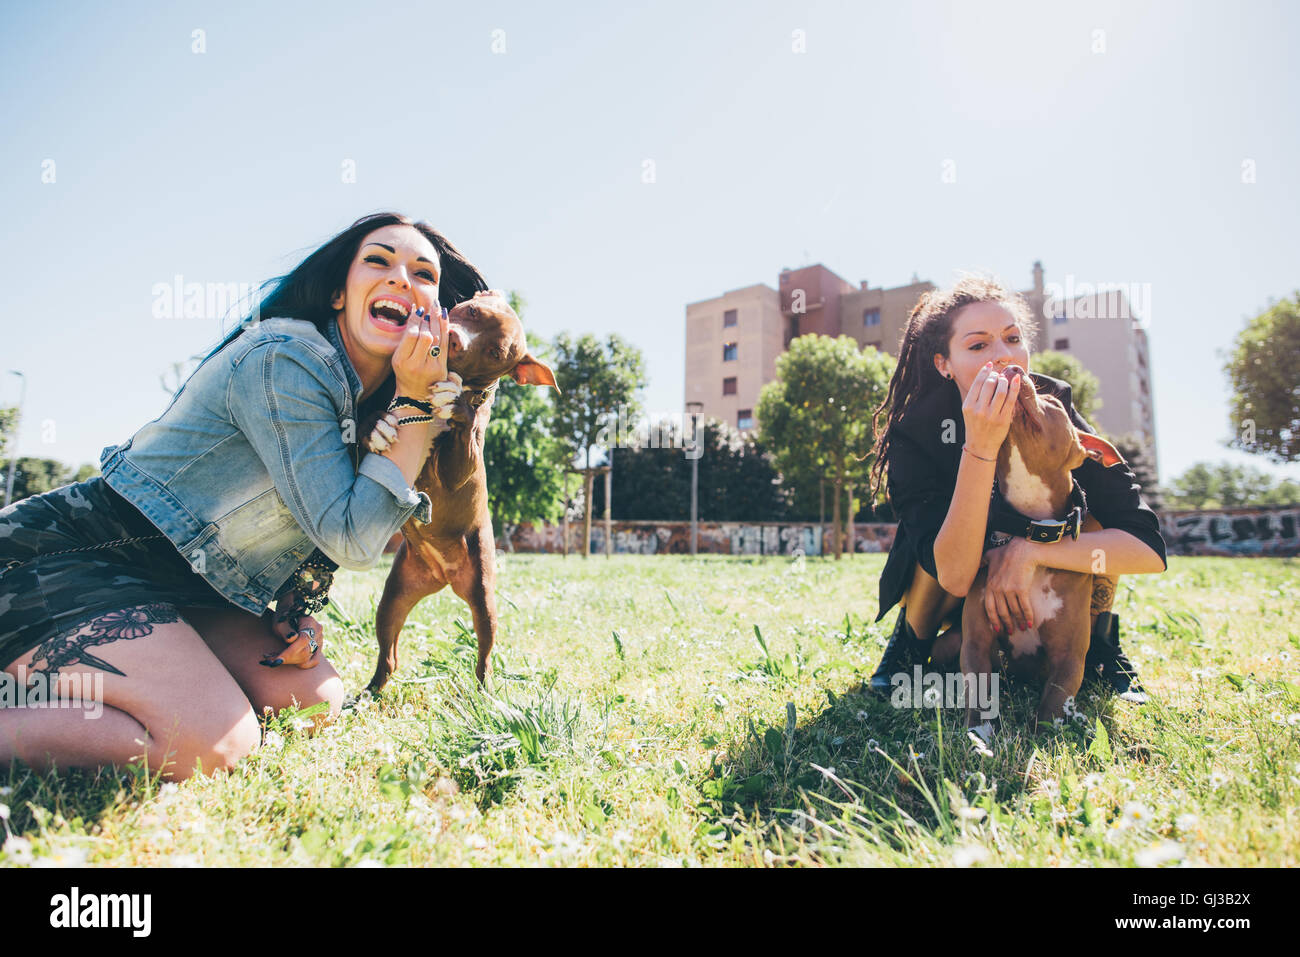 Two young women playing with pit bull terriers in urban park - Stock Image